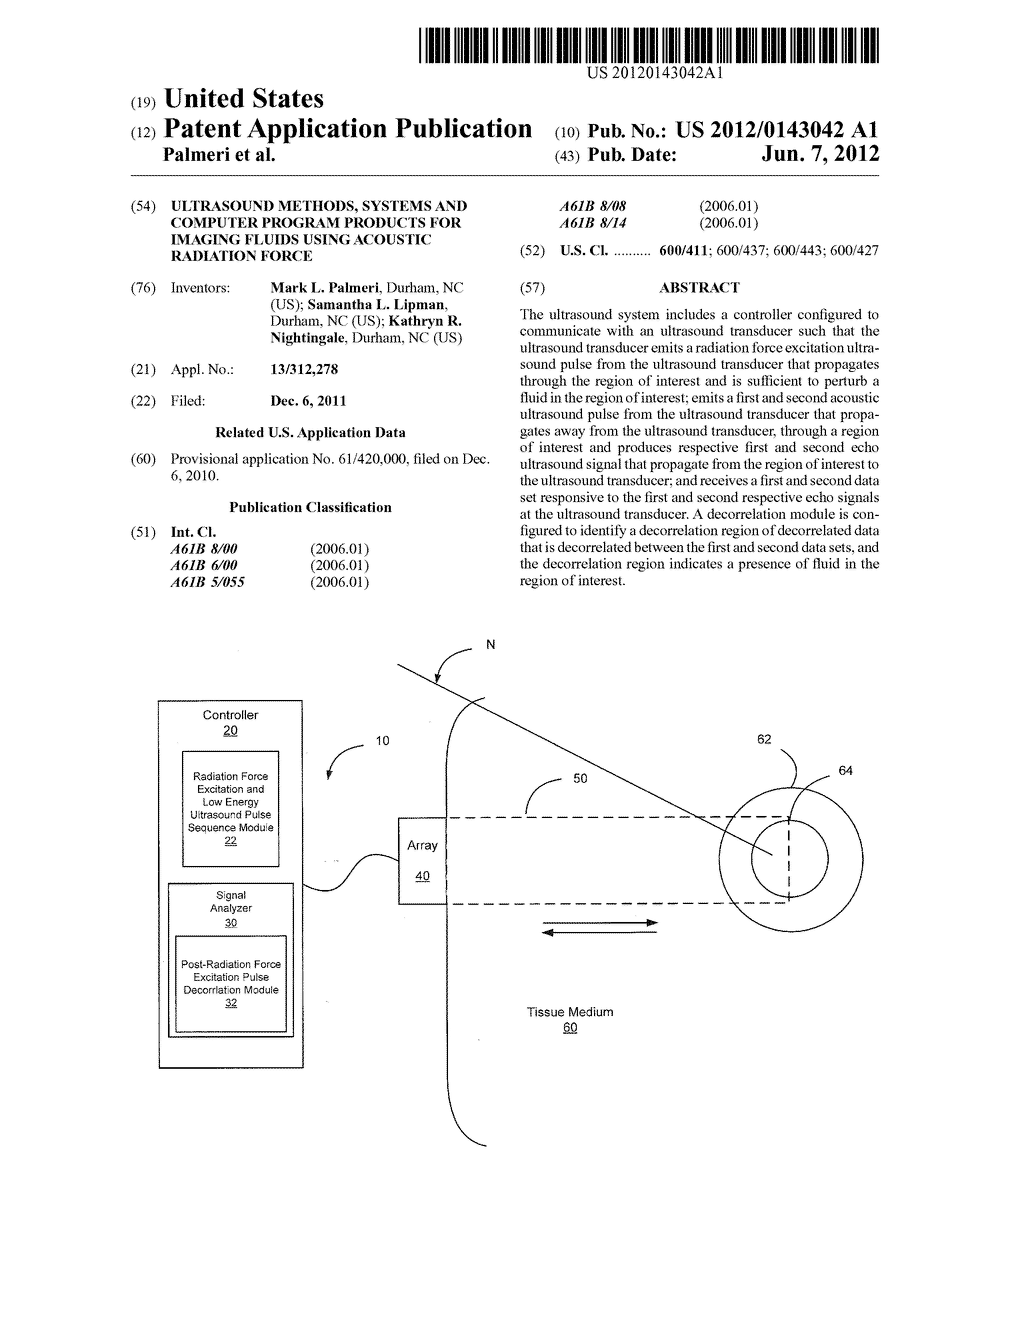 Ultrasound Methods, Systems and Computer Program Products for Imaging     Fluids Using Acoustic Radiation Force - diagram, schematic, and image 01